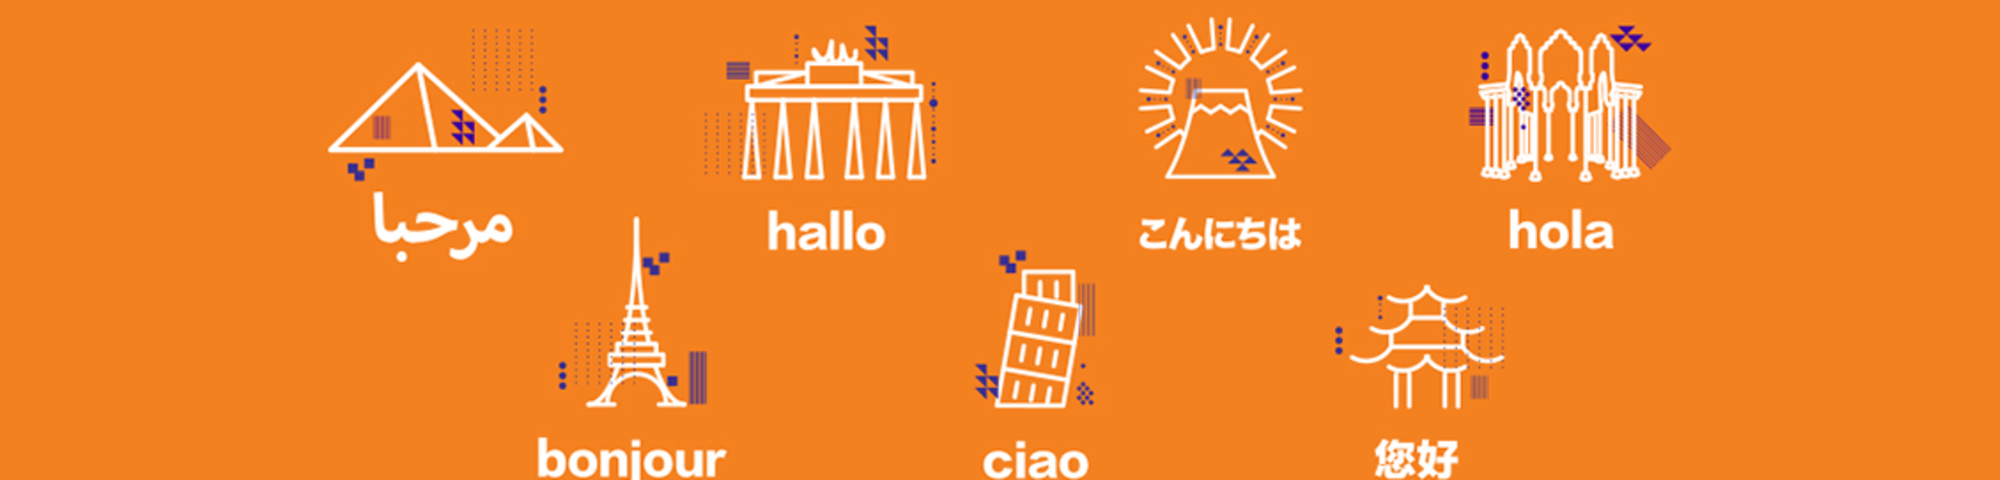 icons for different countries and hello in different languages - Arabic, French, German, Italian, Japanese, Mandarin, Spanish